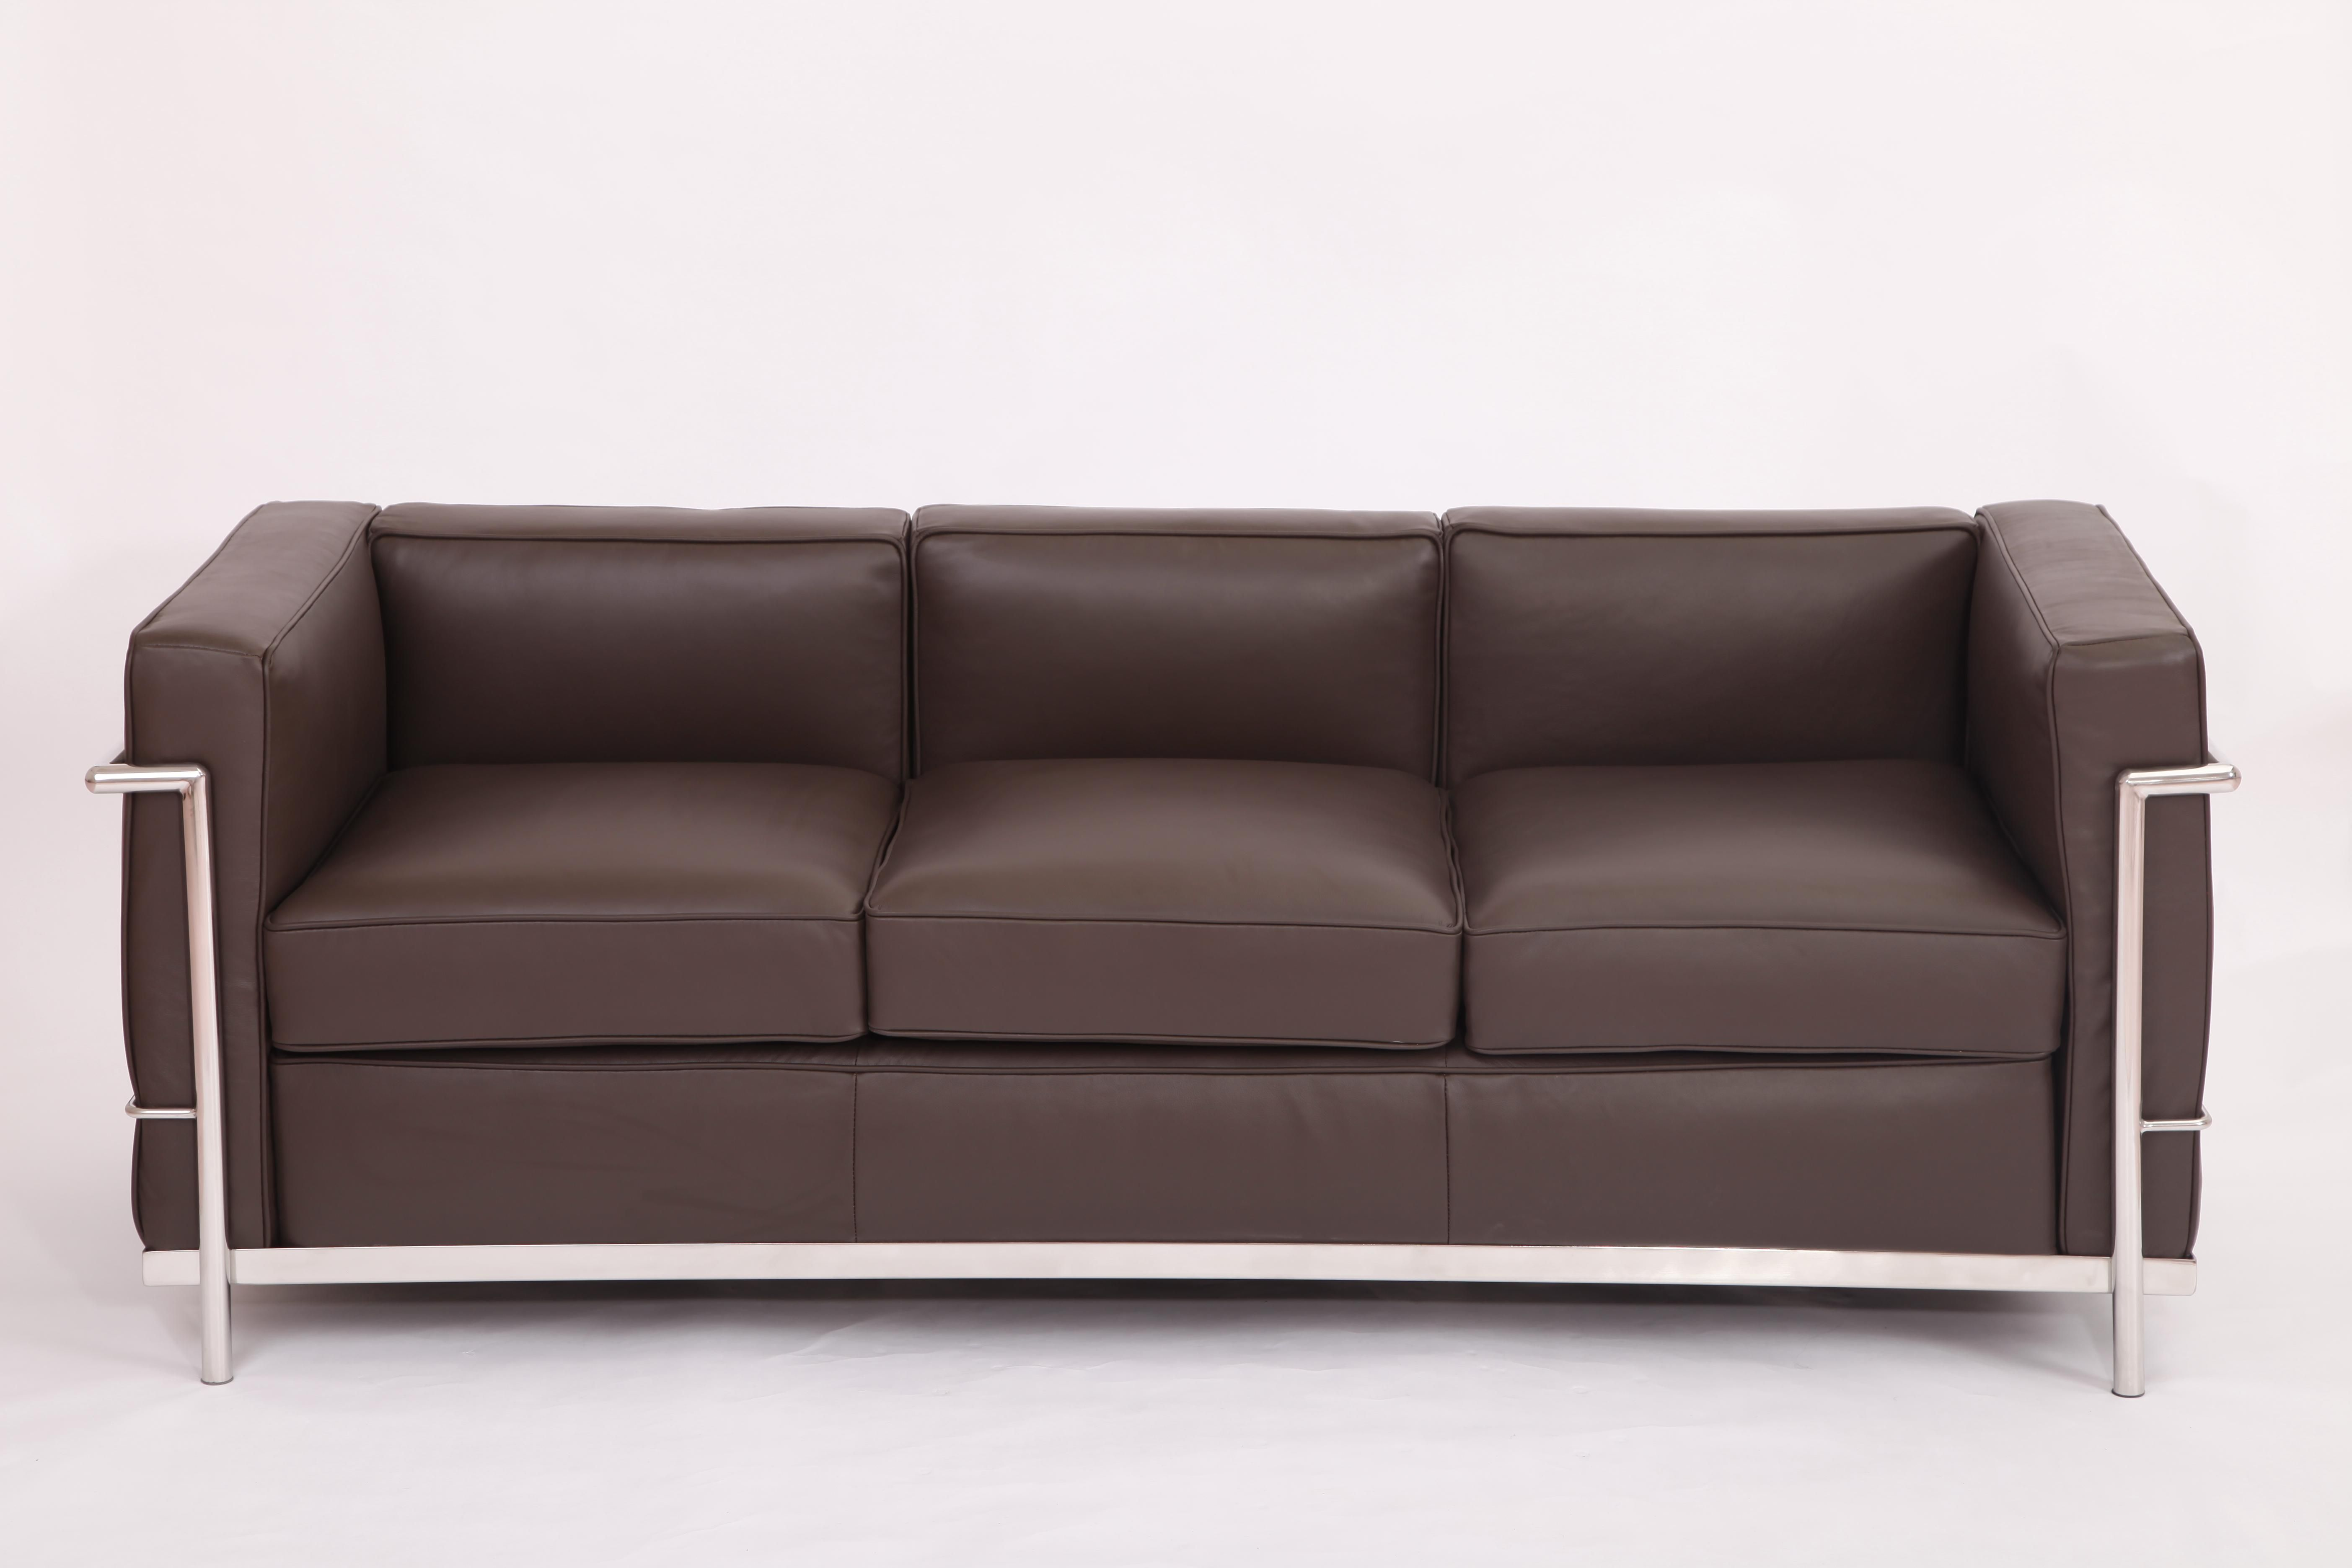 le corbusier sofa replica black recliner for sale chocolate full grain leather lc2 3 seater